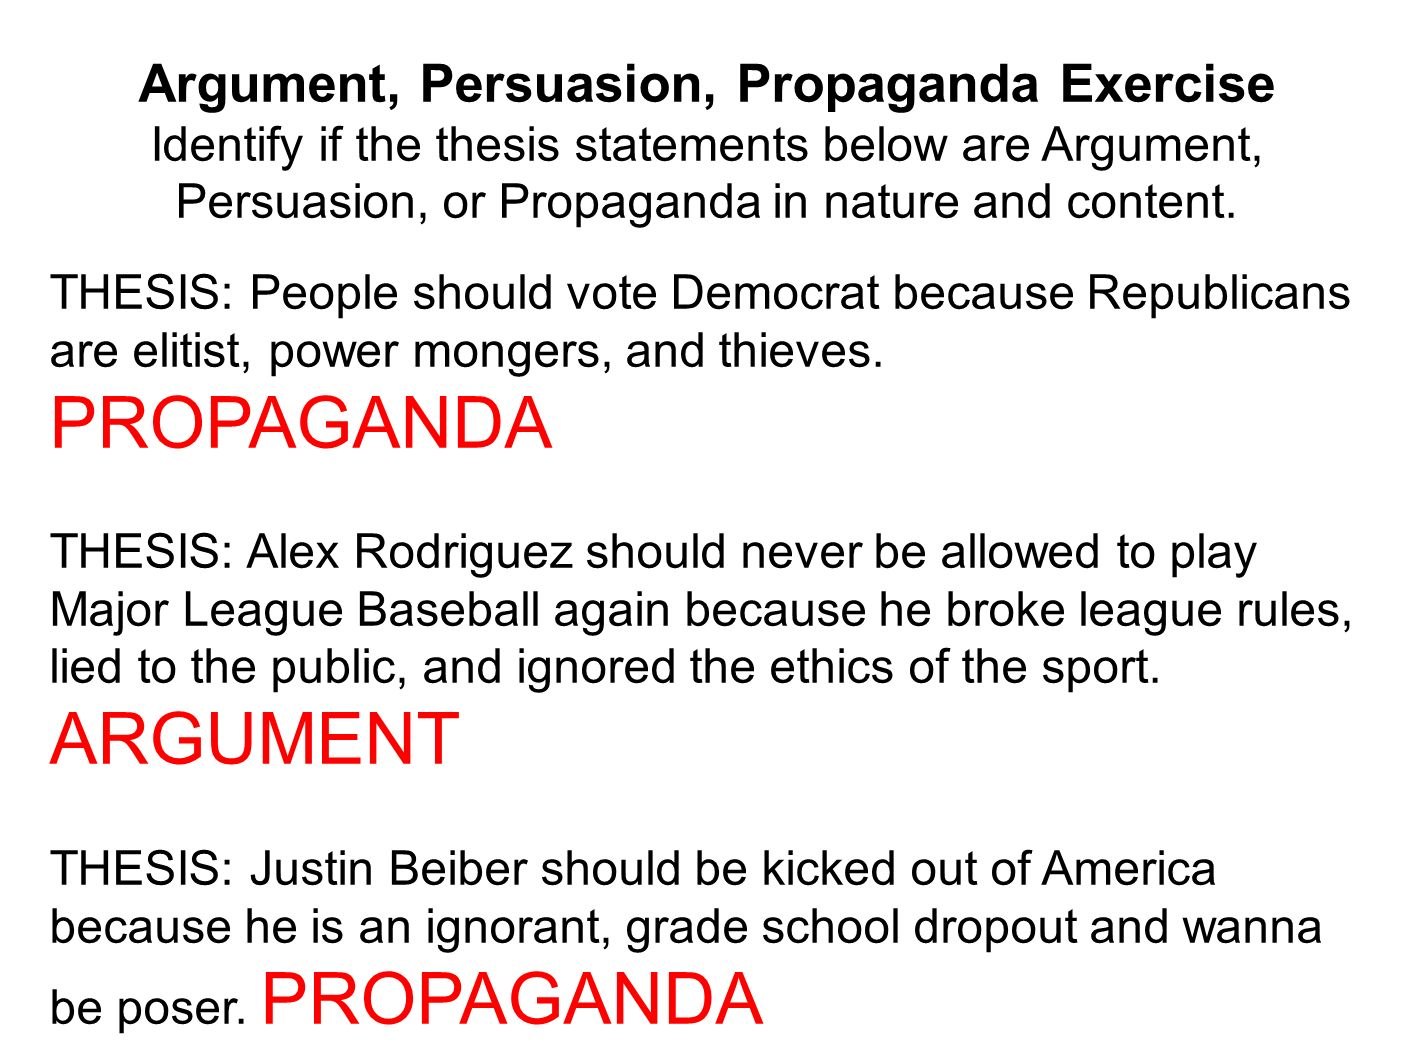 propaganda thesis statements